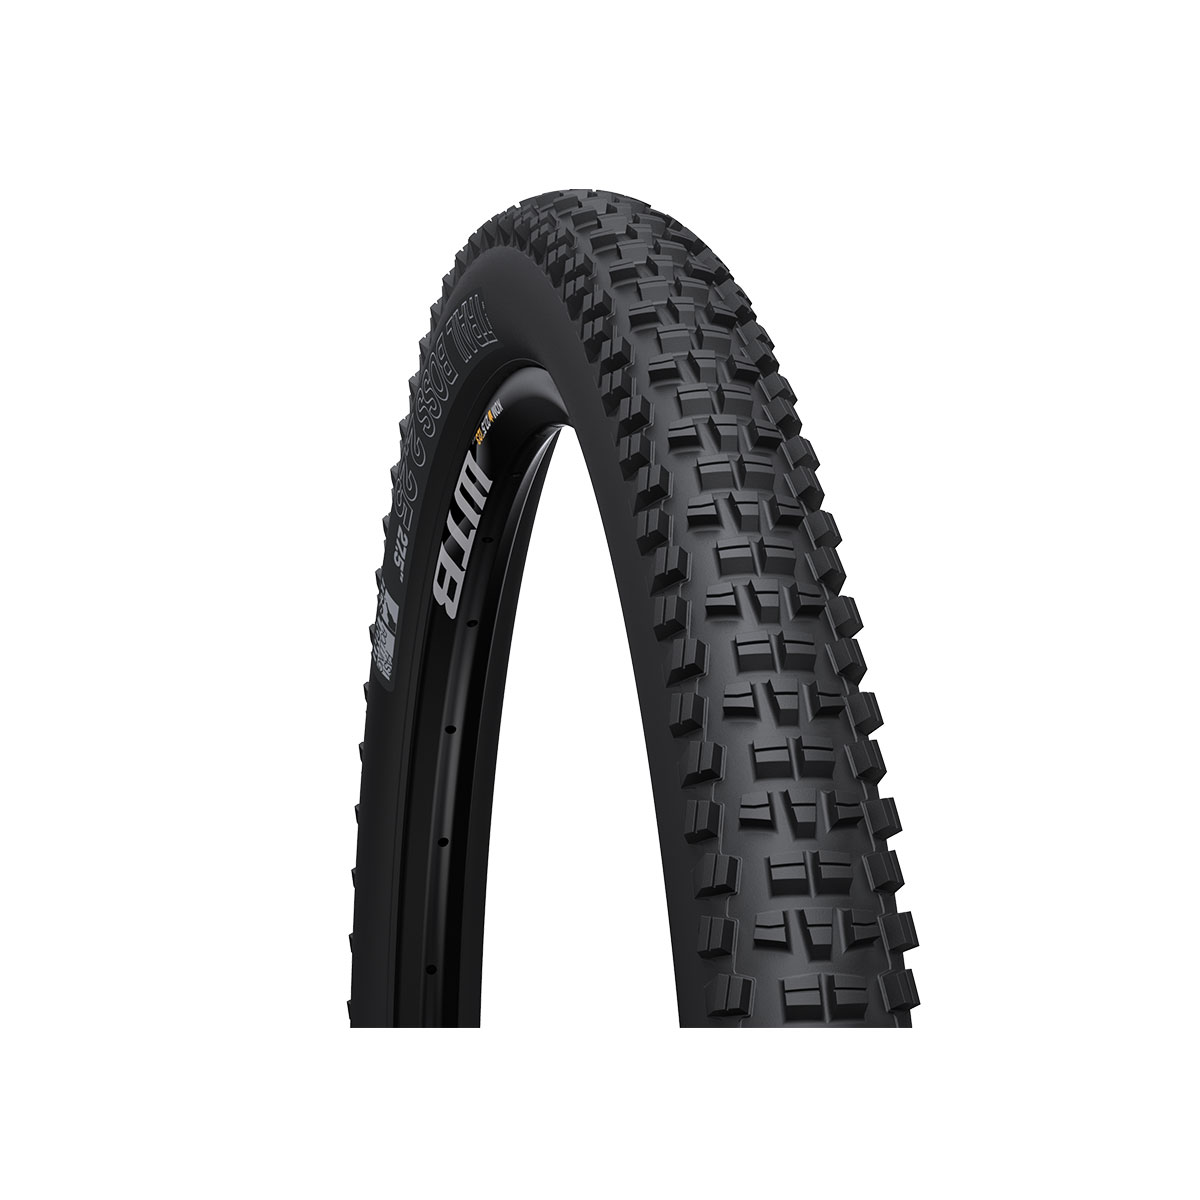 WTB Trail Boss Light/Fast Rolling Tire 2.4 x 27.5""